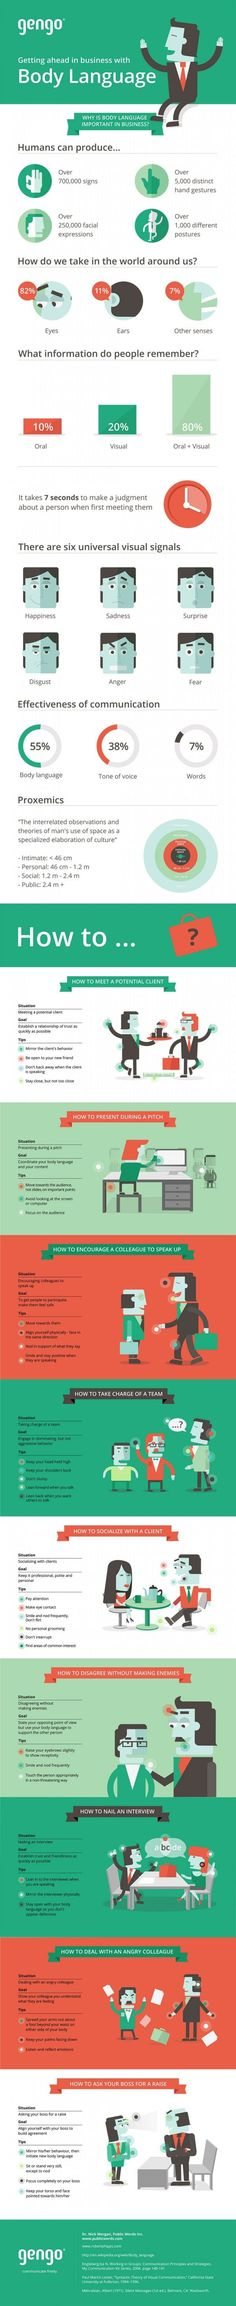 Mastering Body Language For Business {Infographic} - Best Infographics